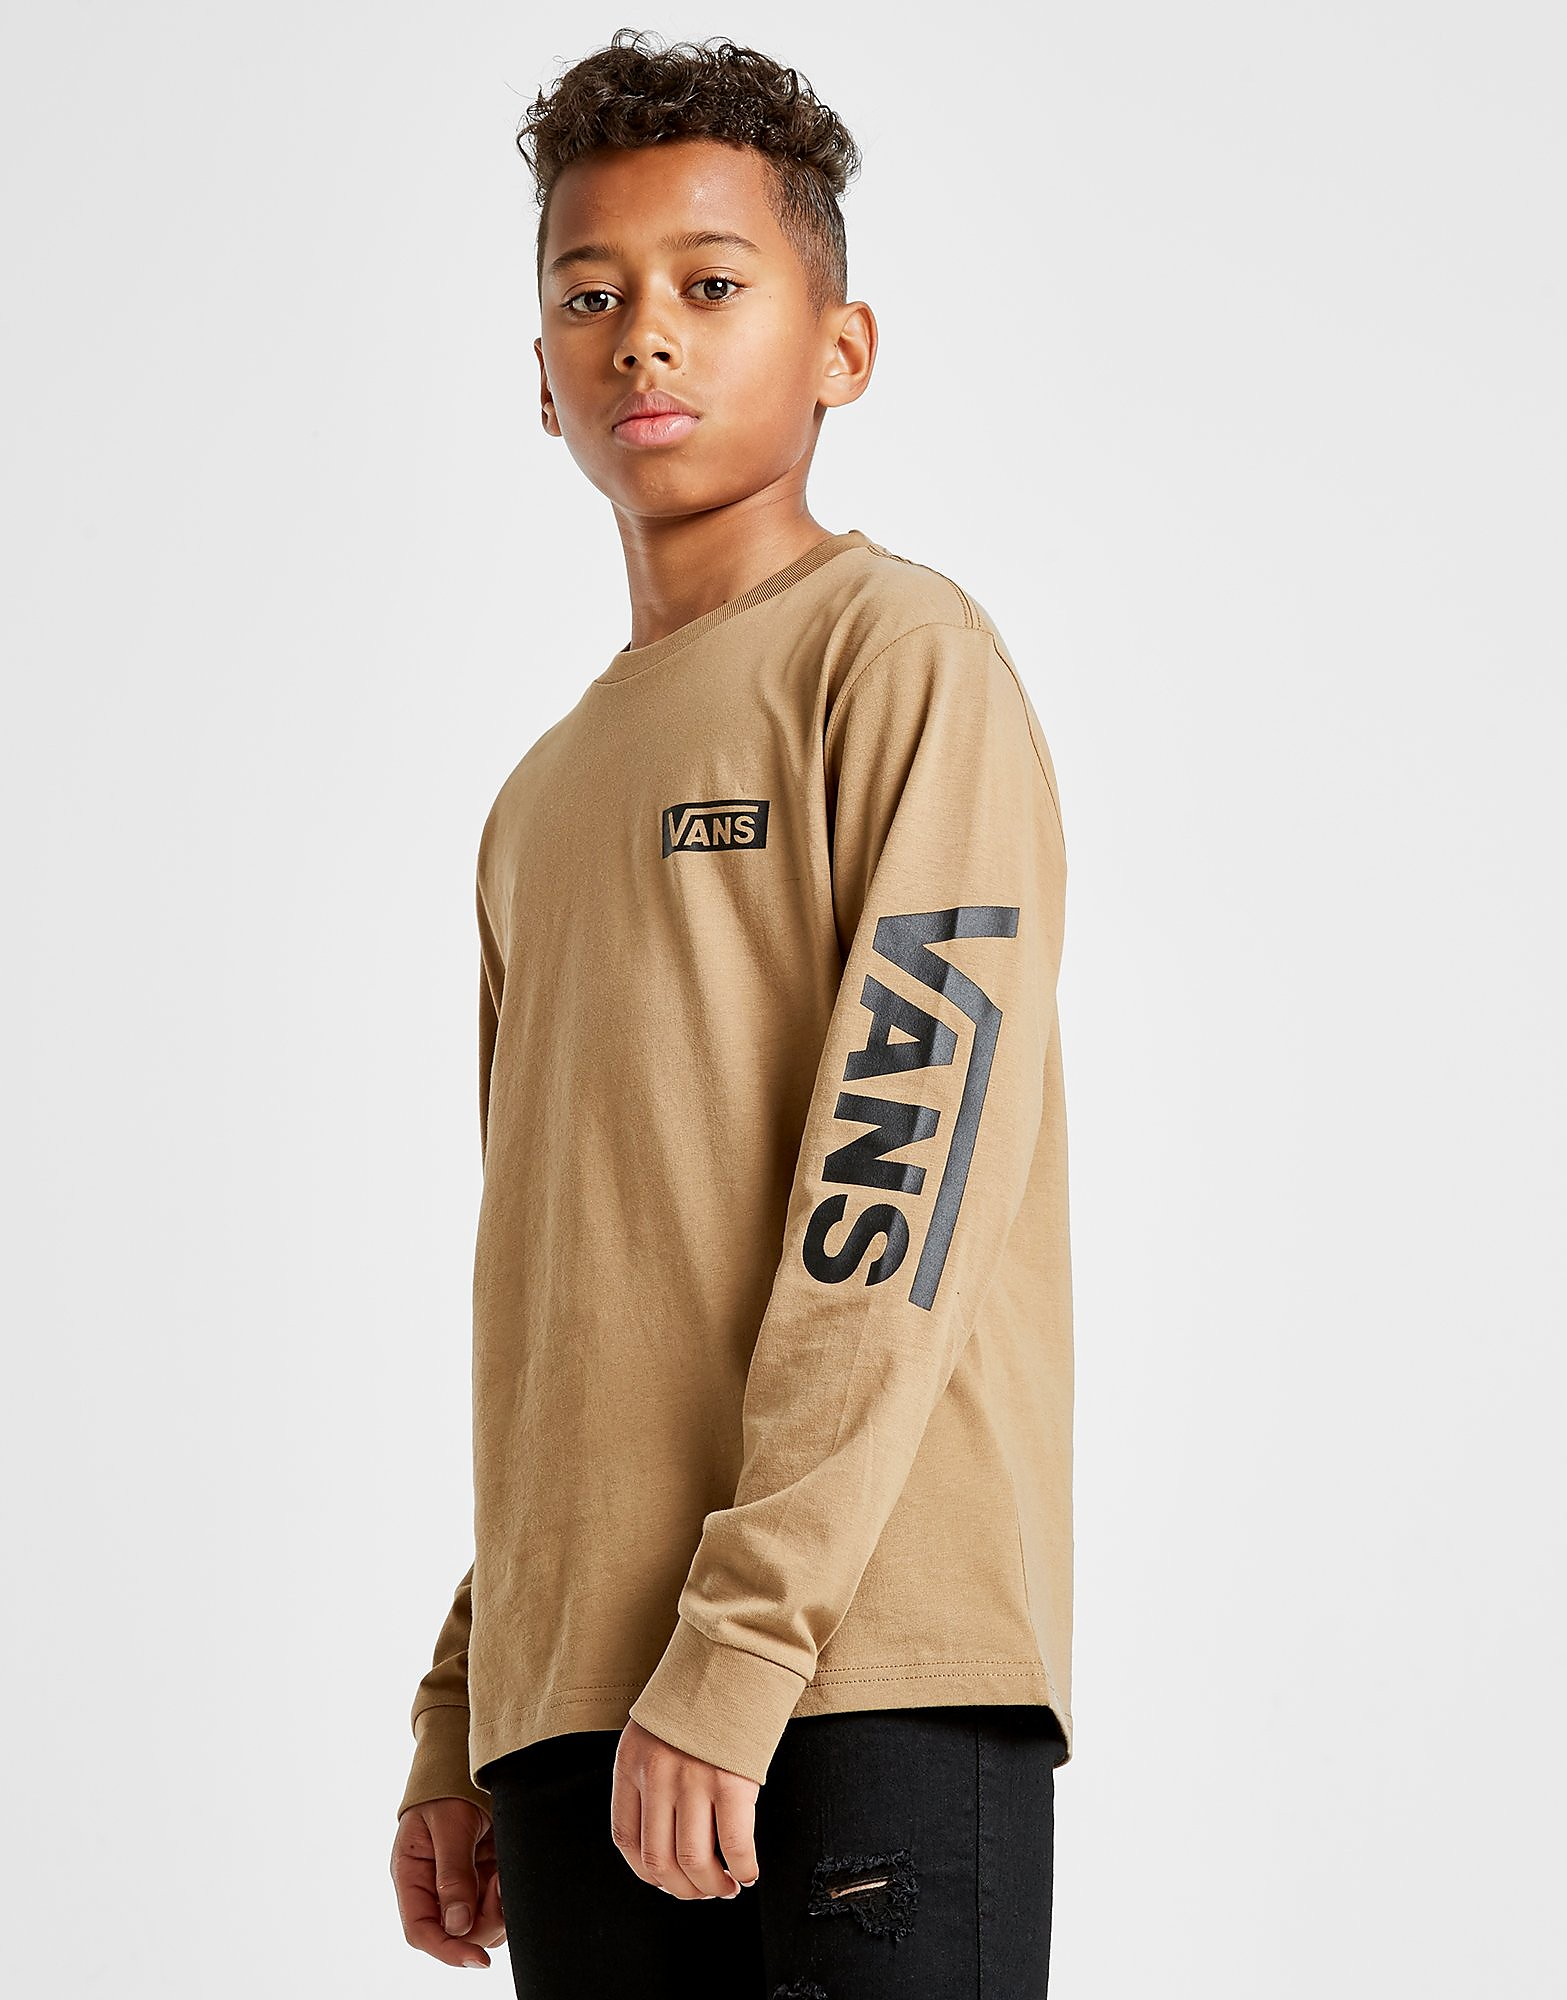 Vans Long Sleeve Logo T-Shirt Junior - alleen bij JD - Bruin - Kind